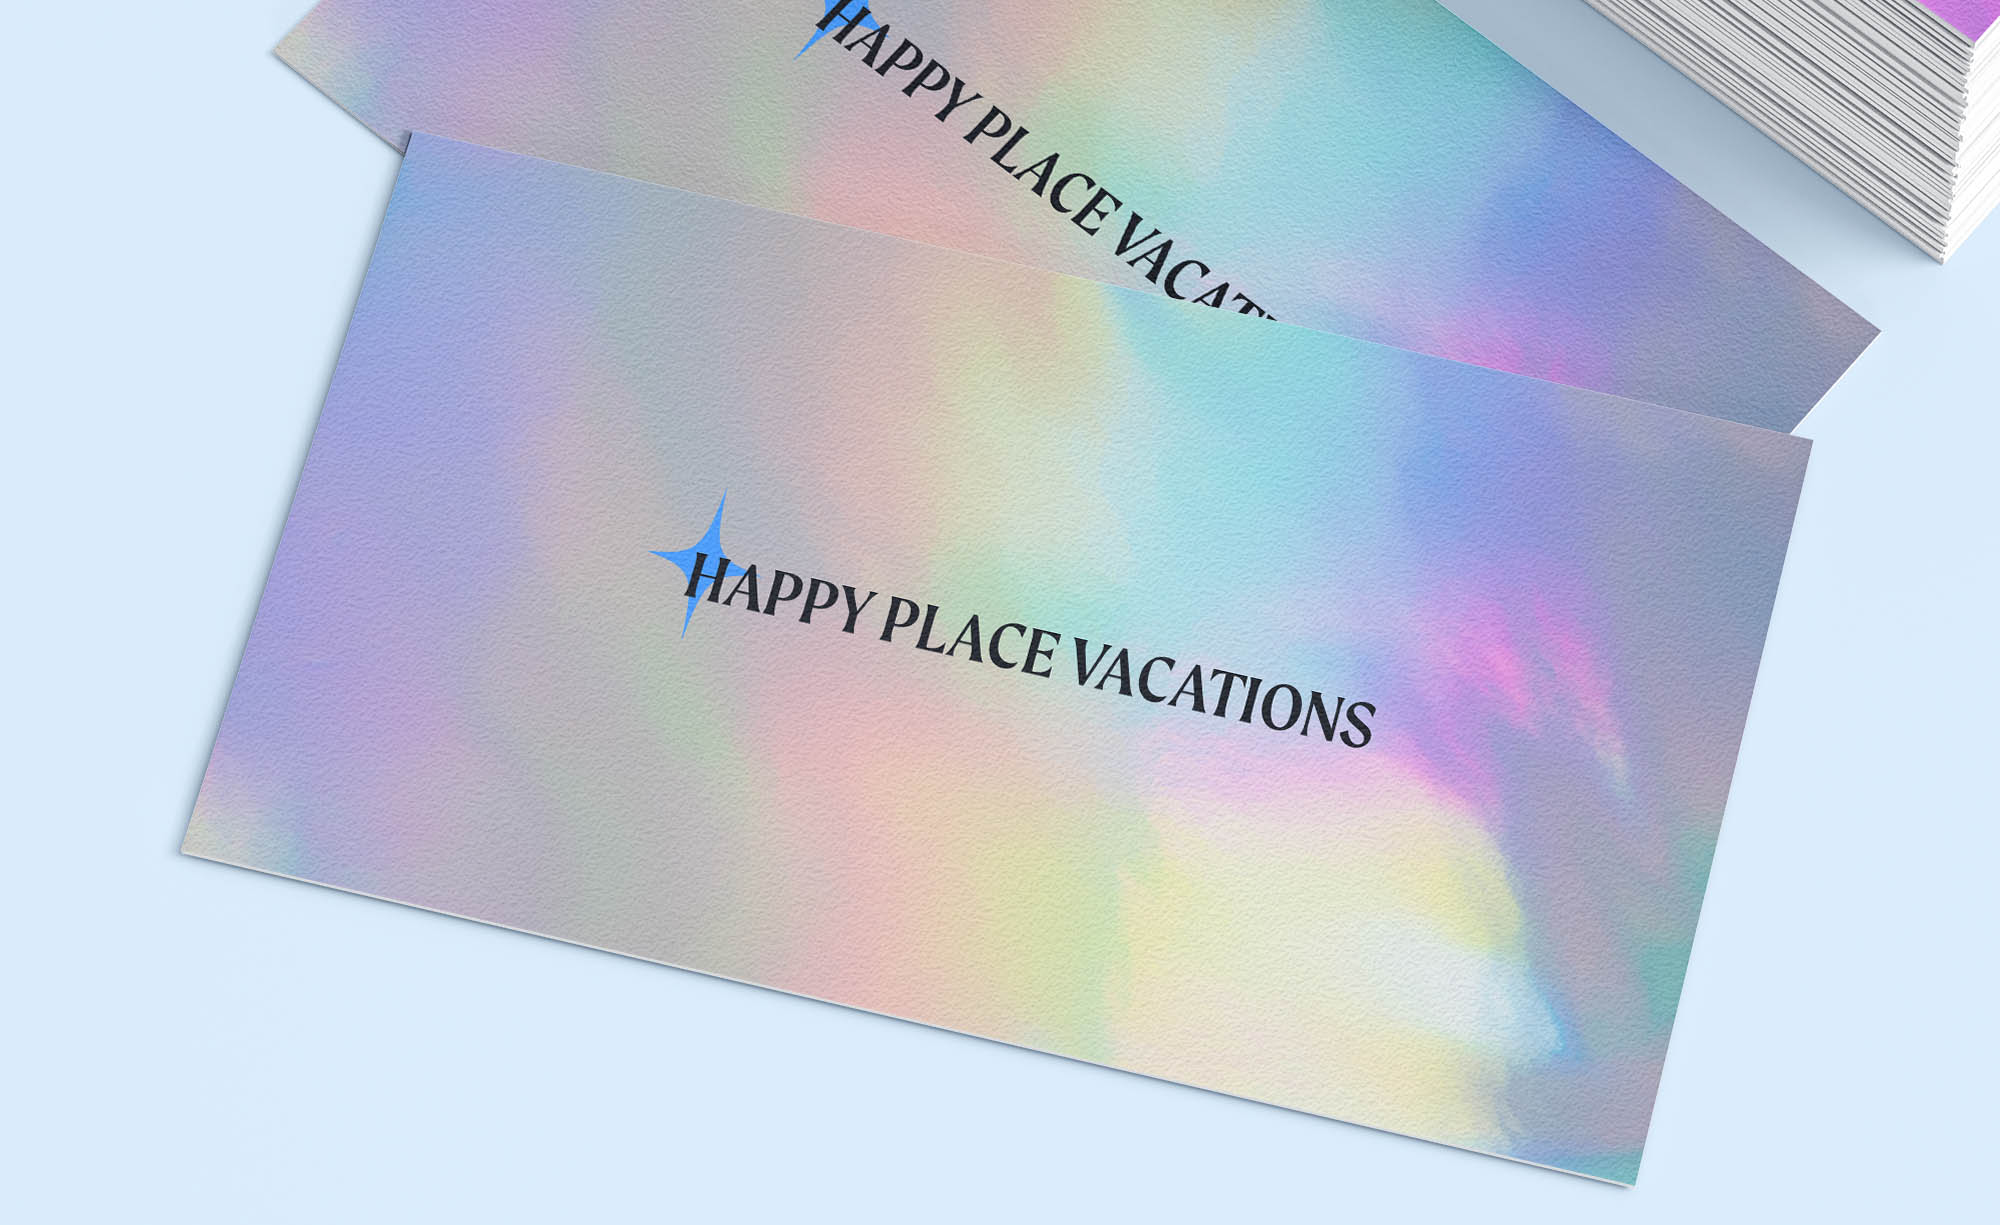 Business card design with Happy Place Vacations logo